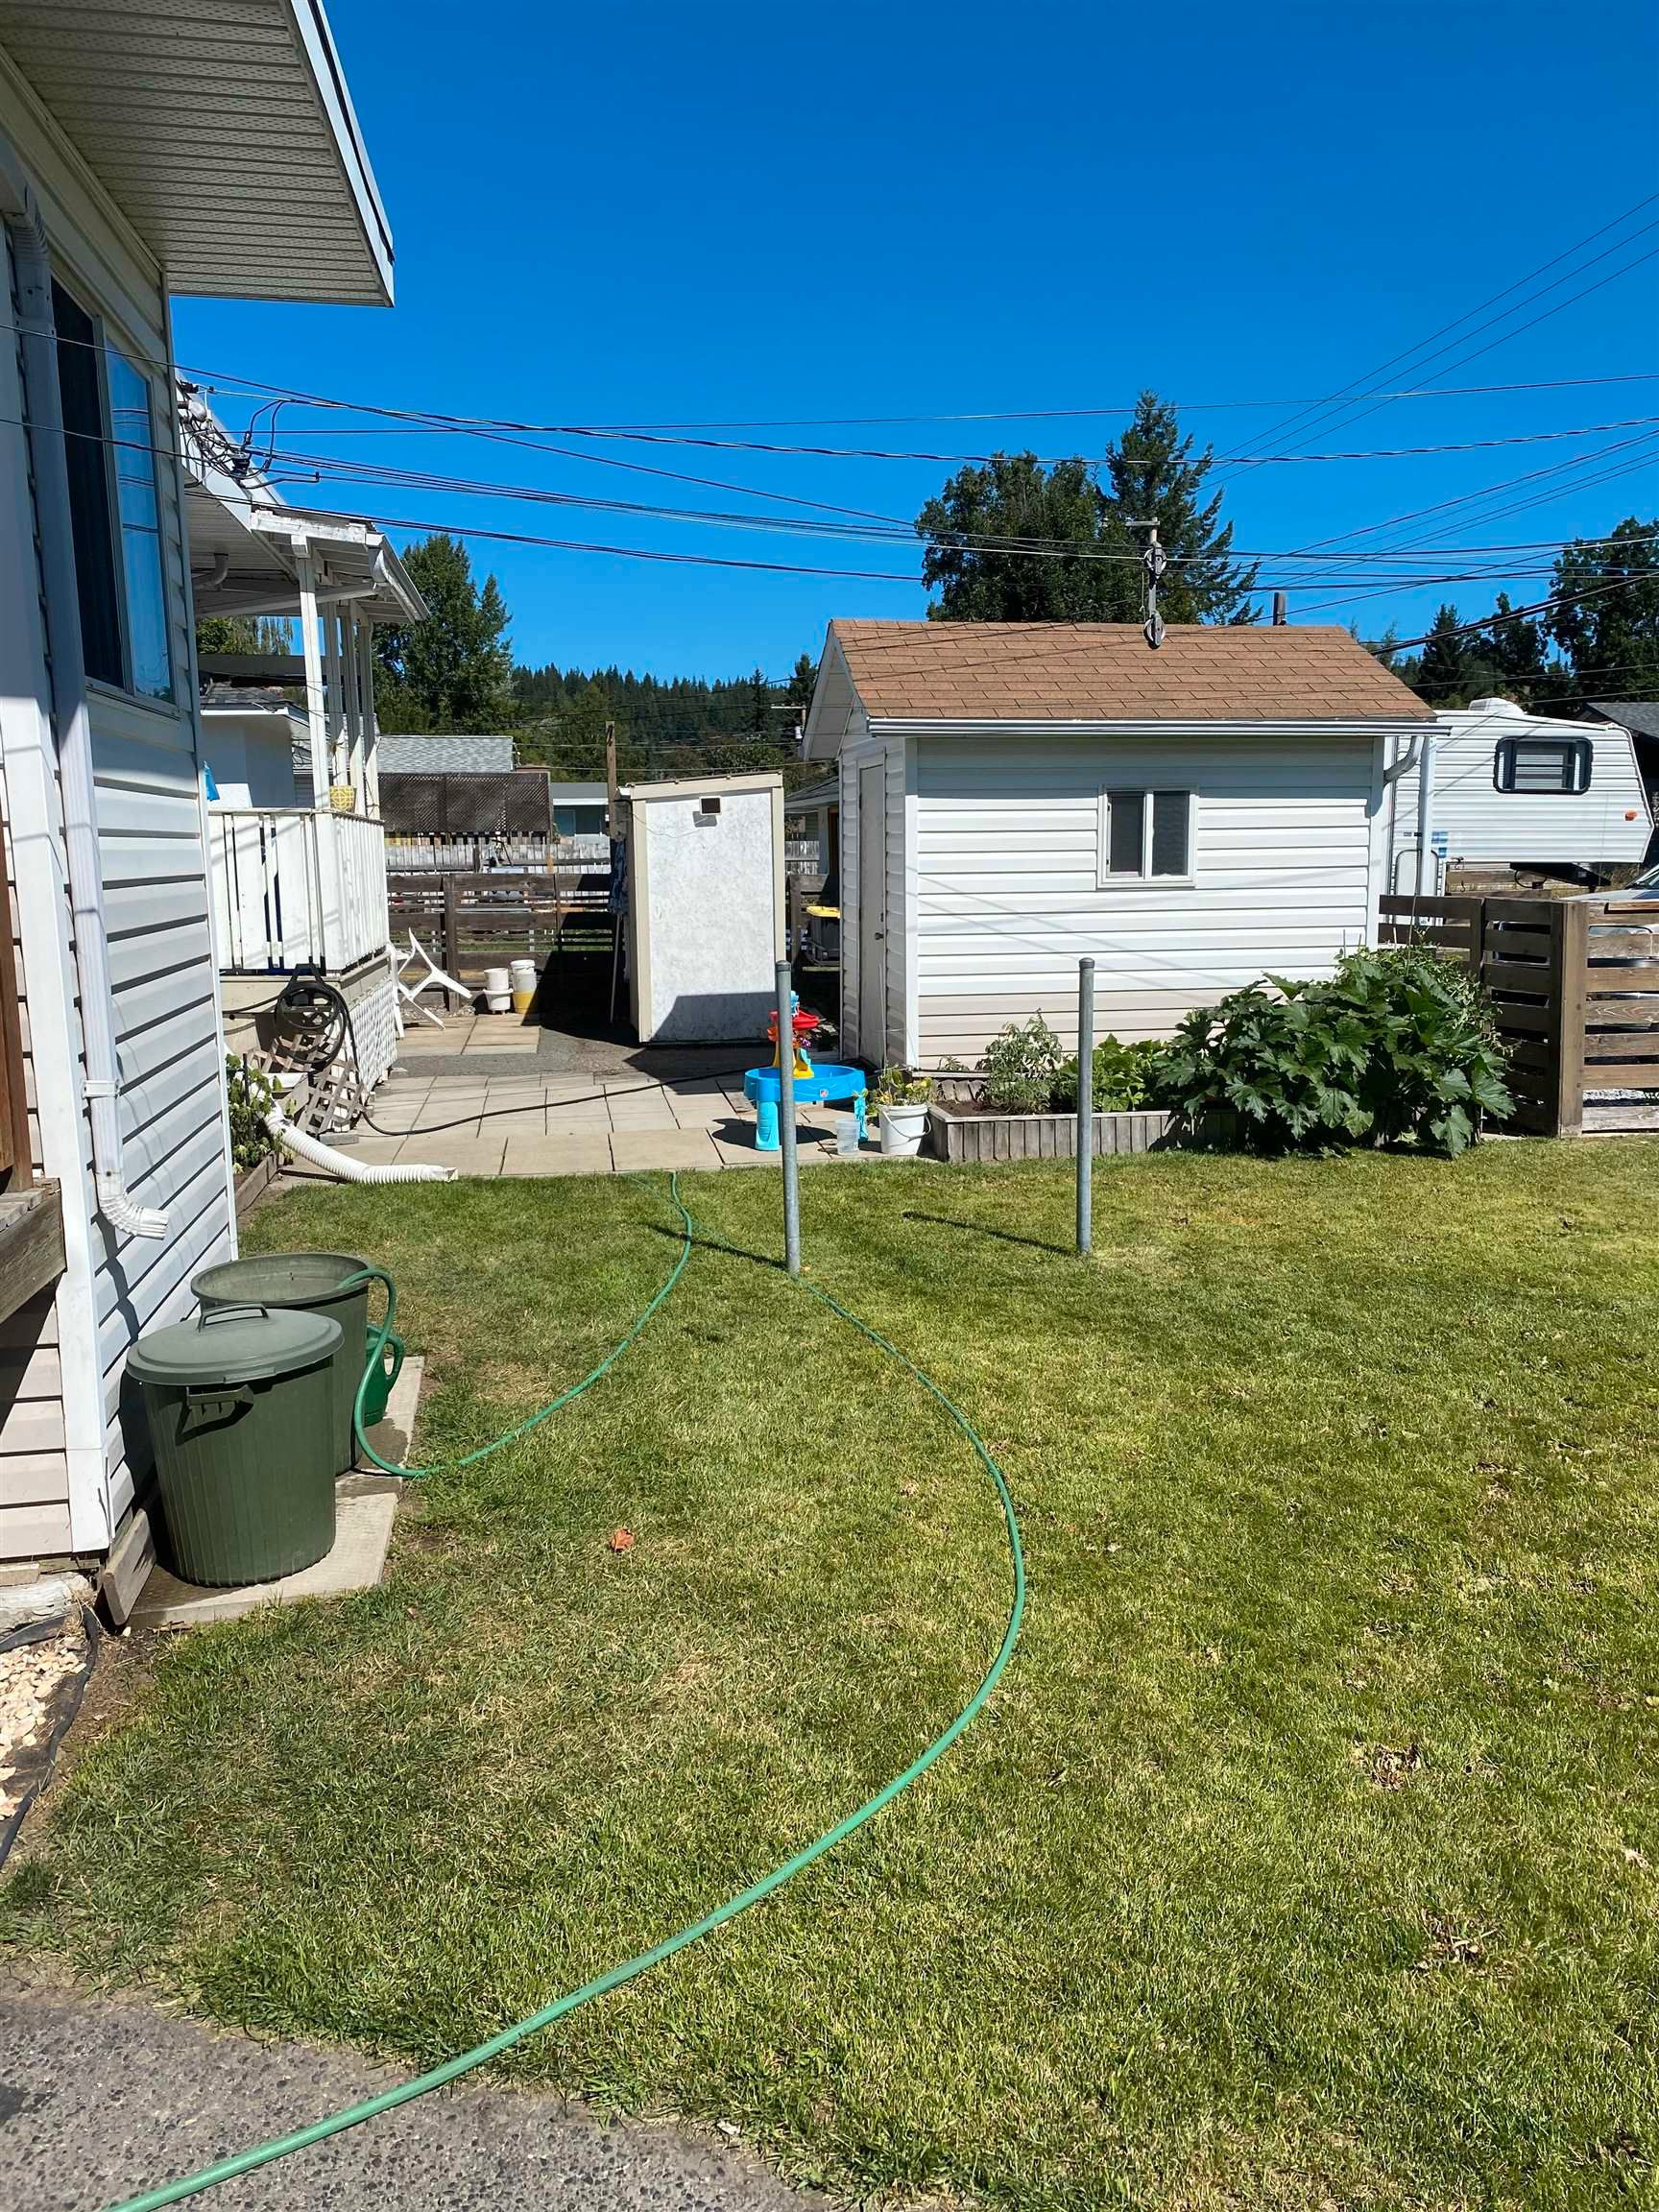 Photo 3: Photos: 346 - 352 CARNEY Street in Prince George: Central Duplex for sale (PG City Central (Zone 72))  : MLS®# R2609479